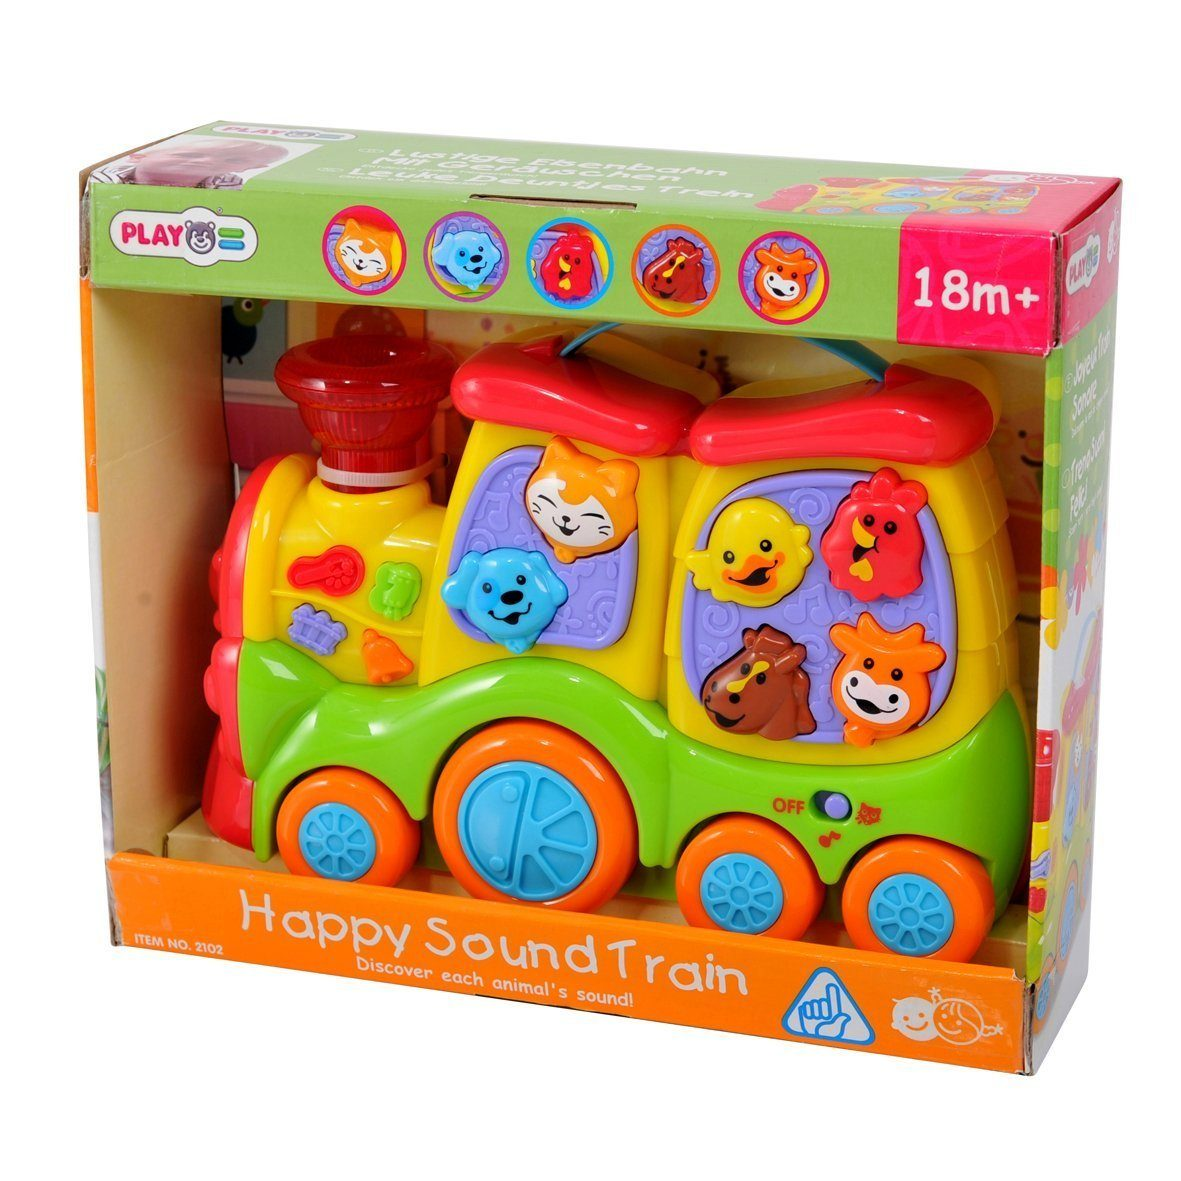 PlayGo Happy Sound Train Only $10.73 (Reg $32.99)!